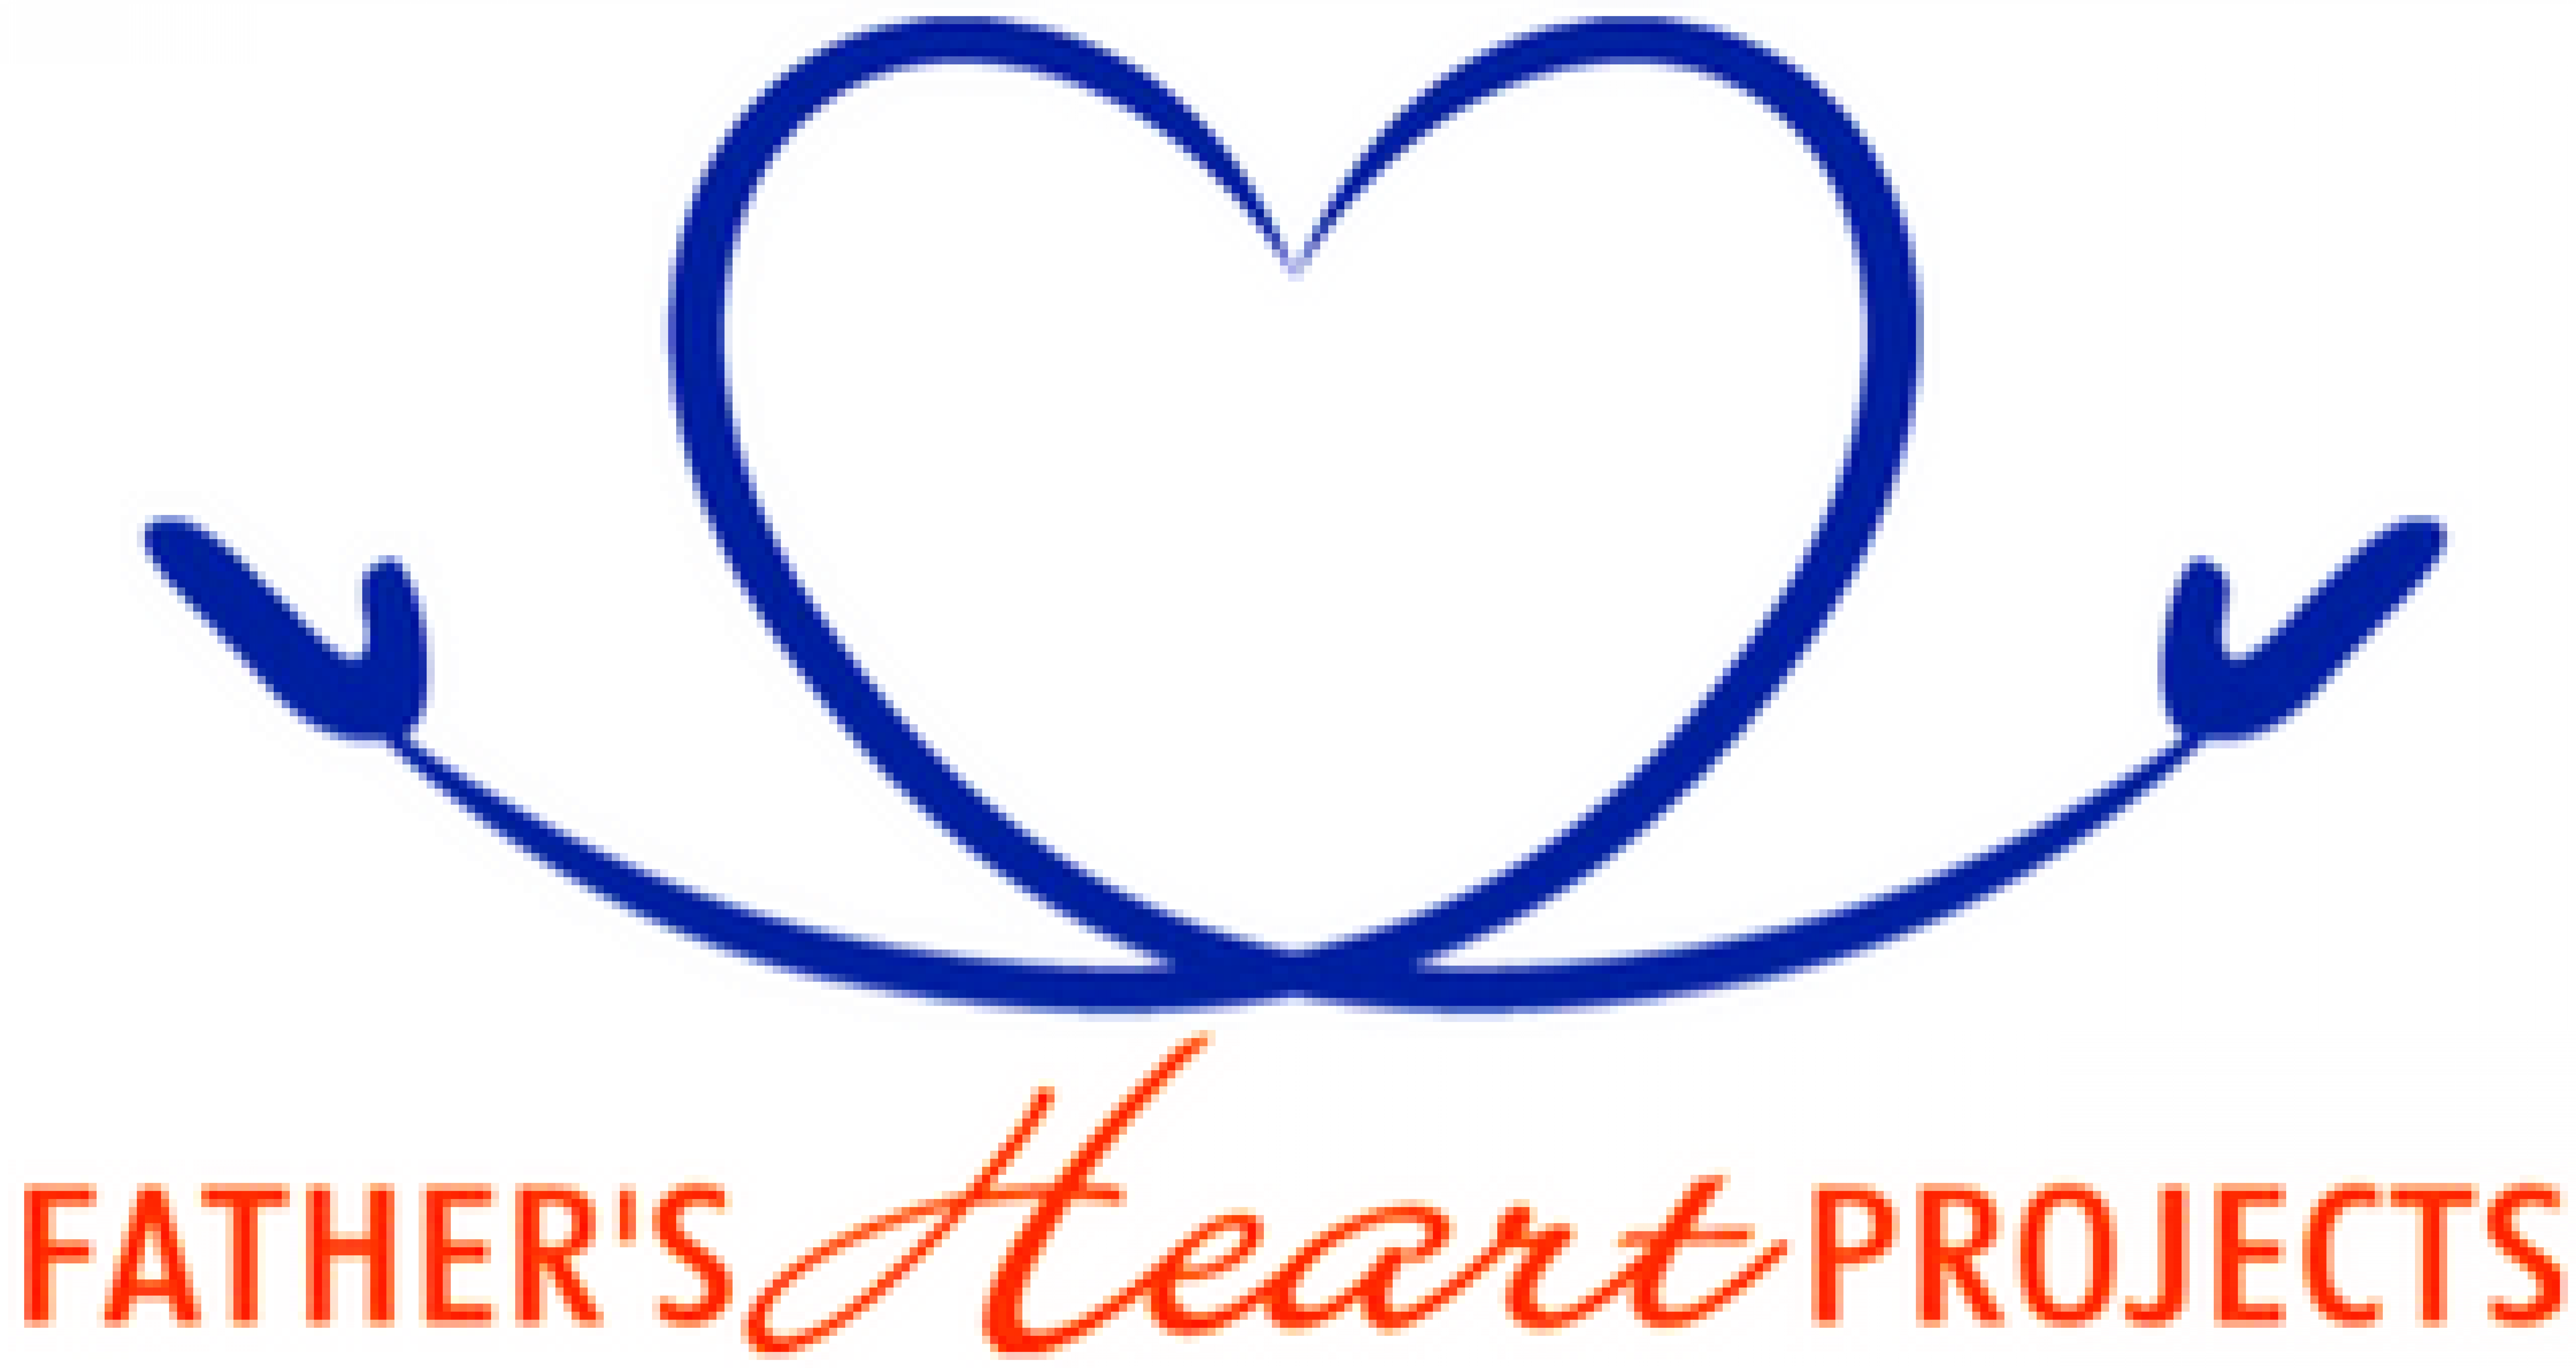 Father's Heart Projects Foundation